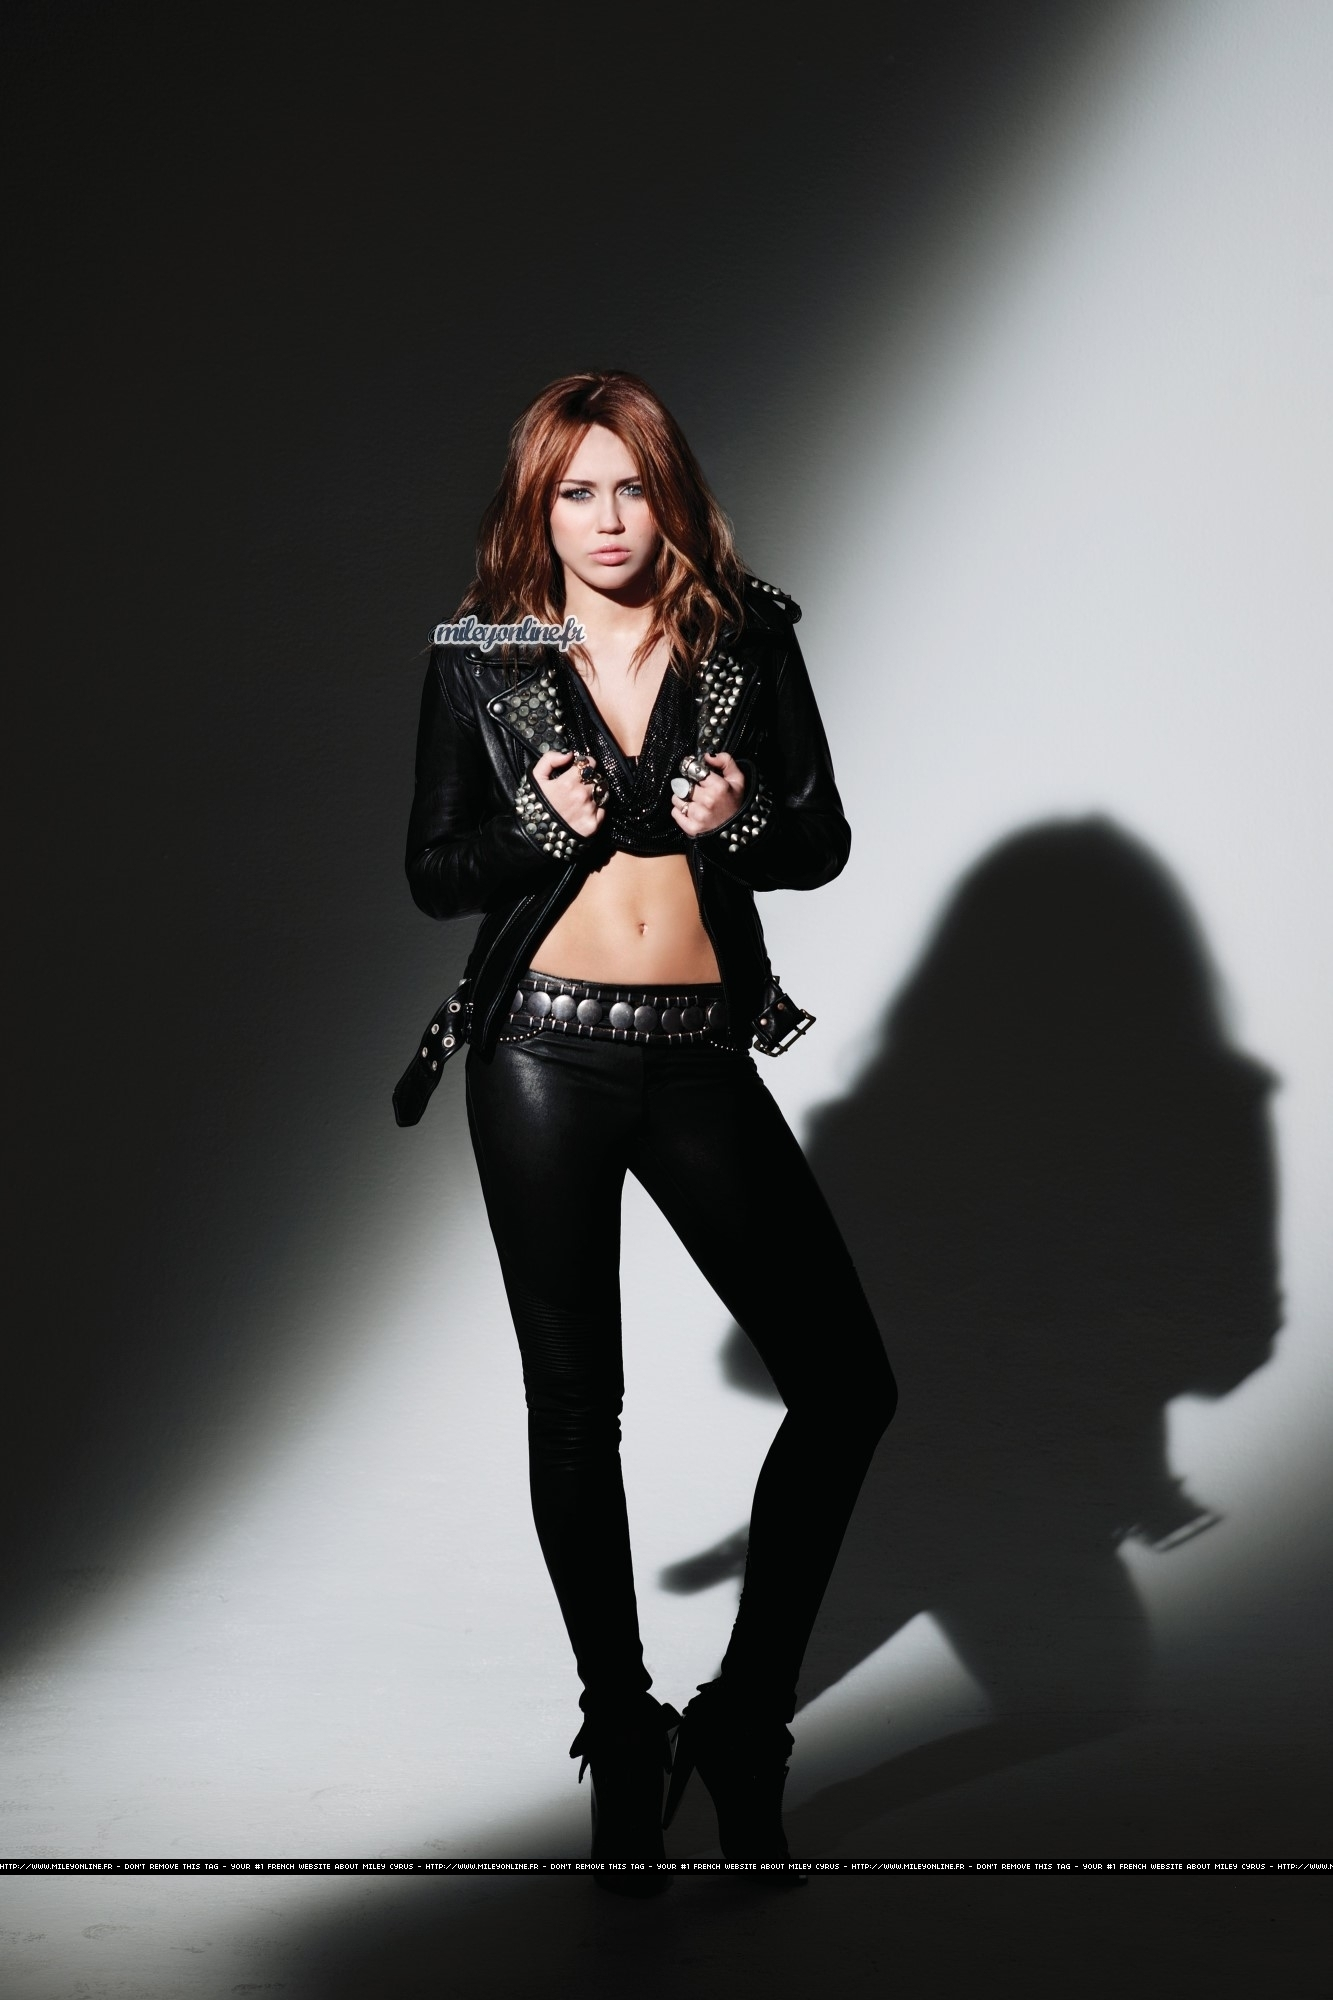 Miley cyrus photoshoot 2010